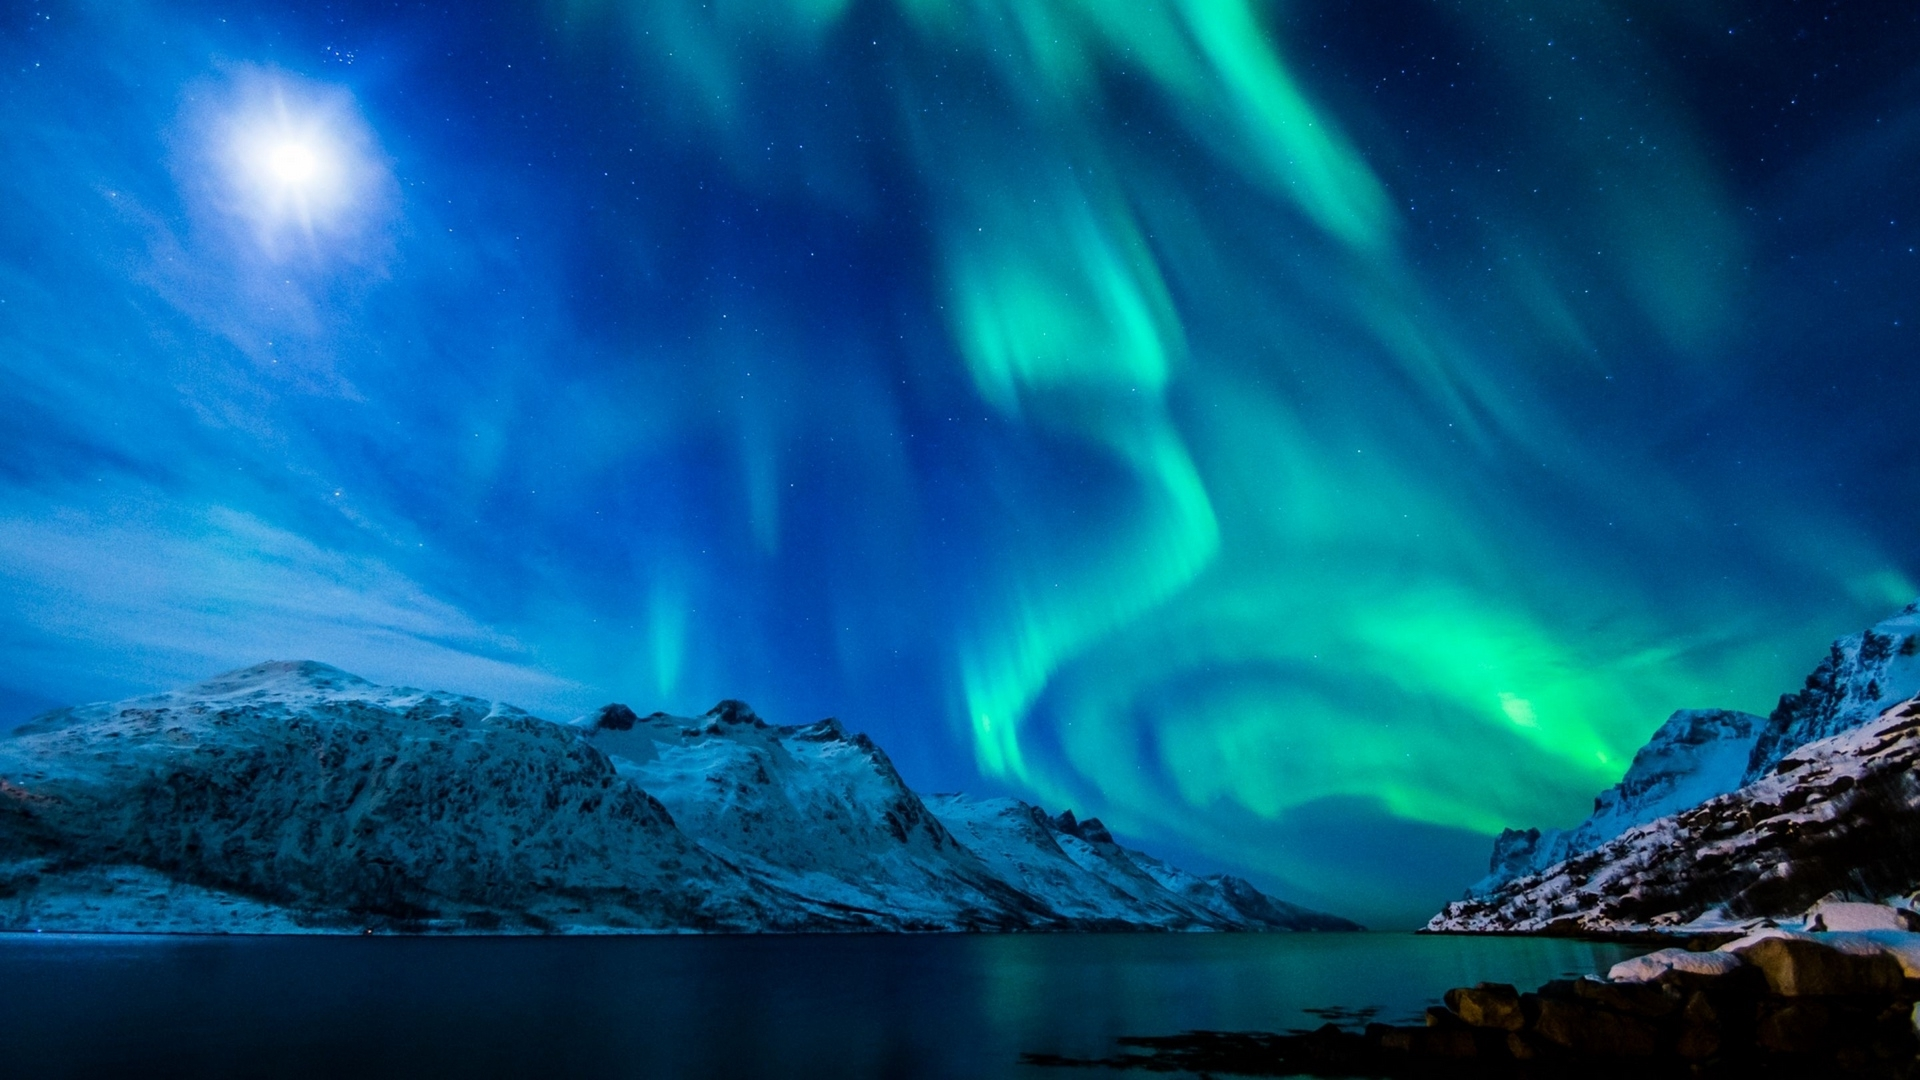 download wallpaper 1920x1080 northern lights, aurora borealis, uk